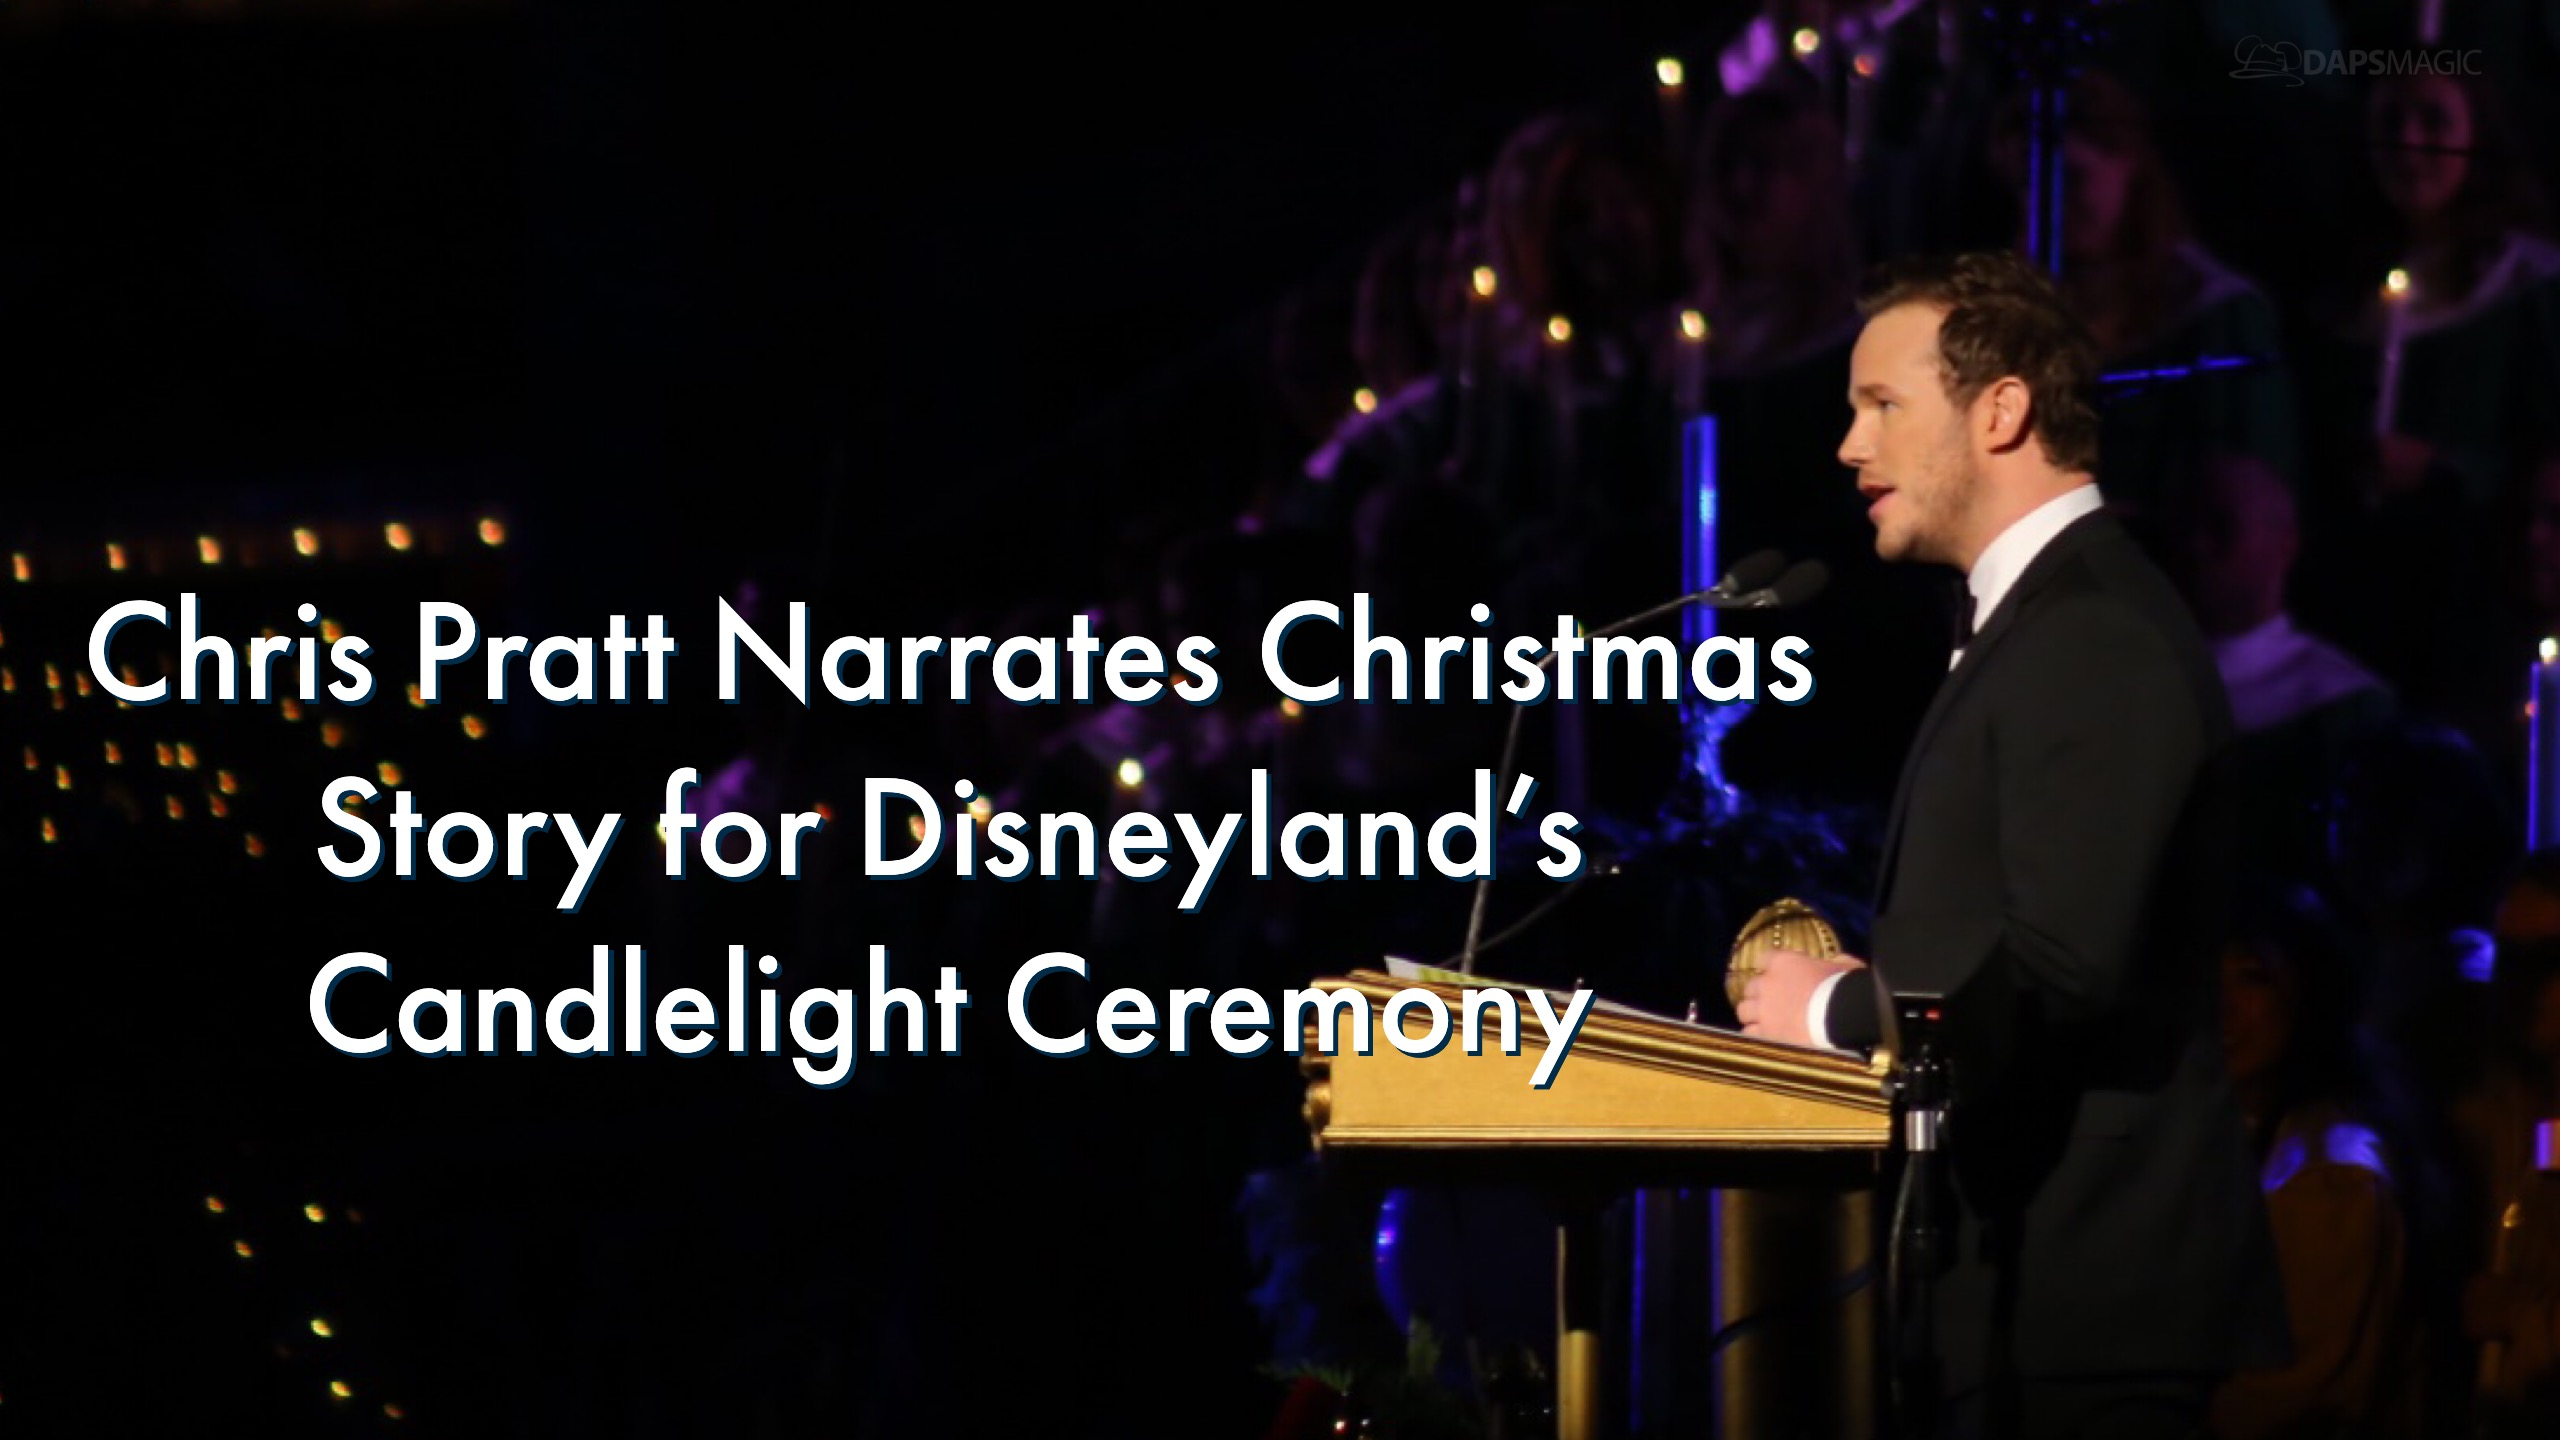 Chris Pratt Tells the Story of Christmas For Disneyland's Candlelight Ceremony